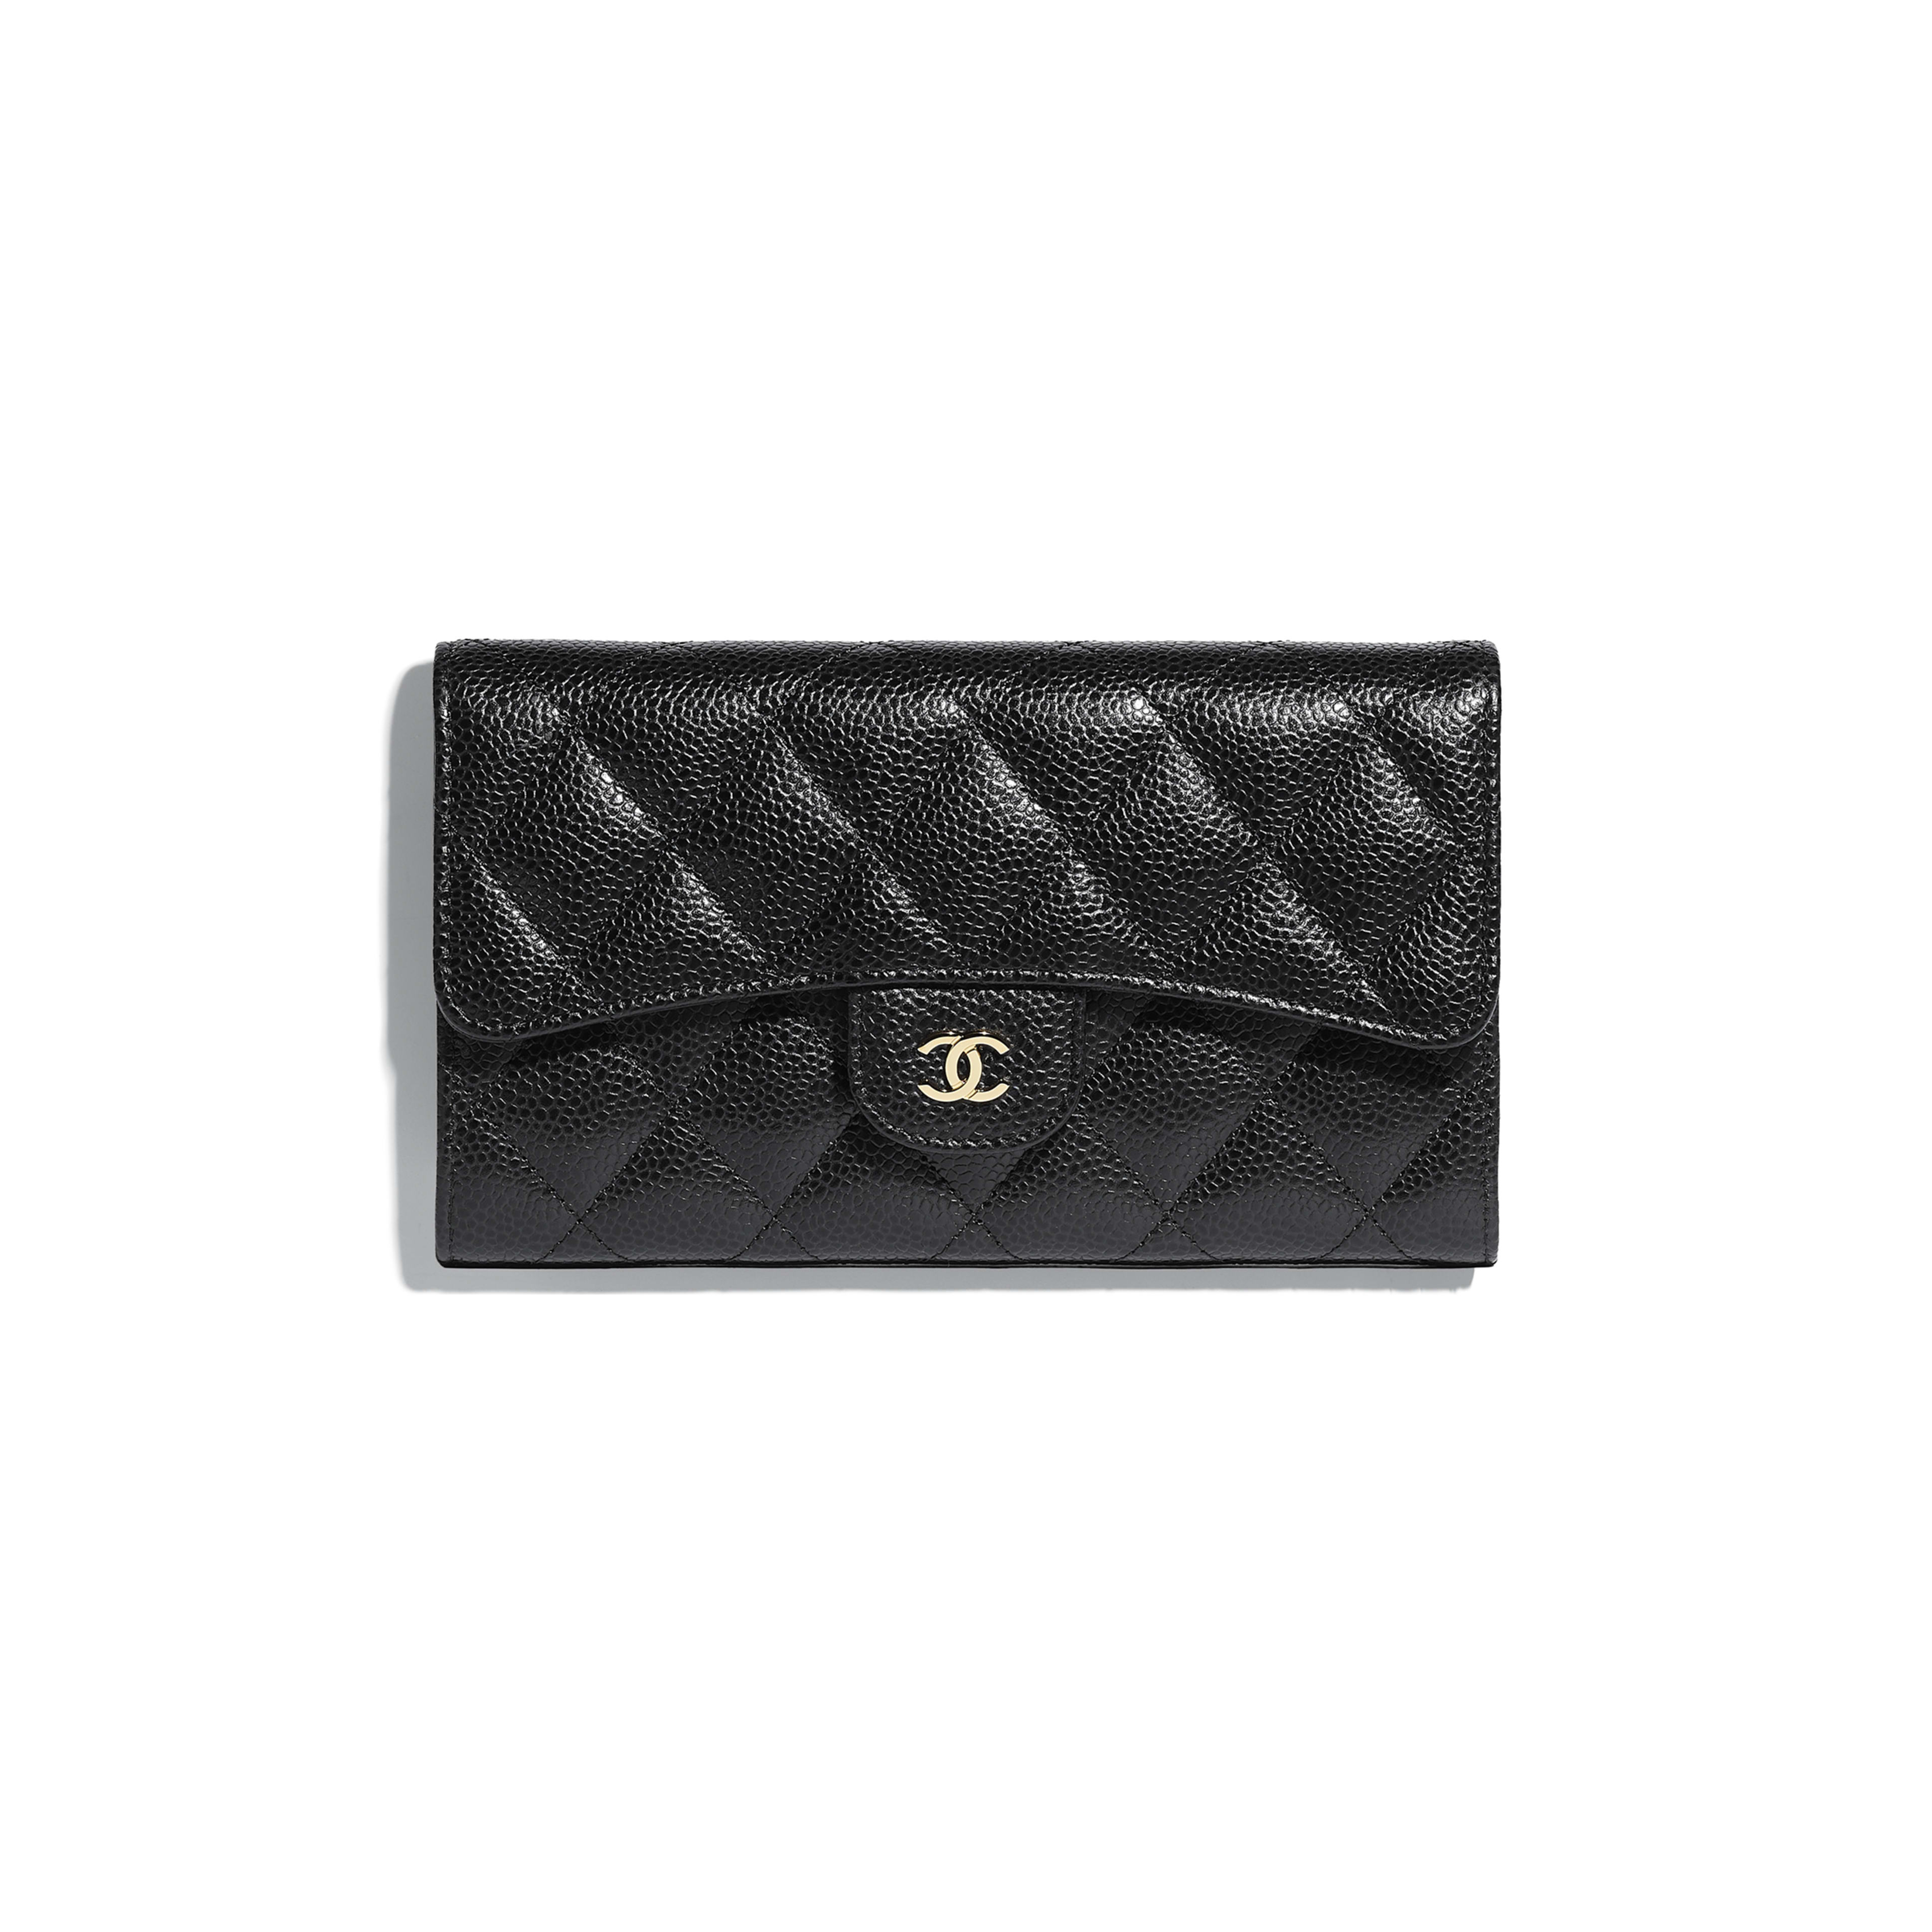 Classic Flap Wallet - Black - Grained Calfskin & Gold-Tone Metal - Default view - see full sized version